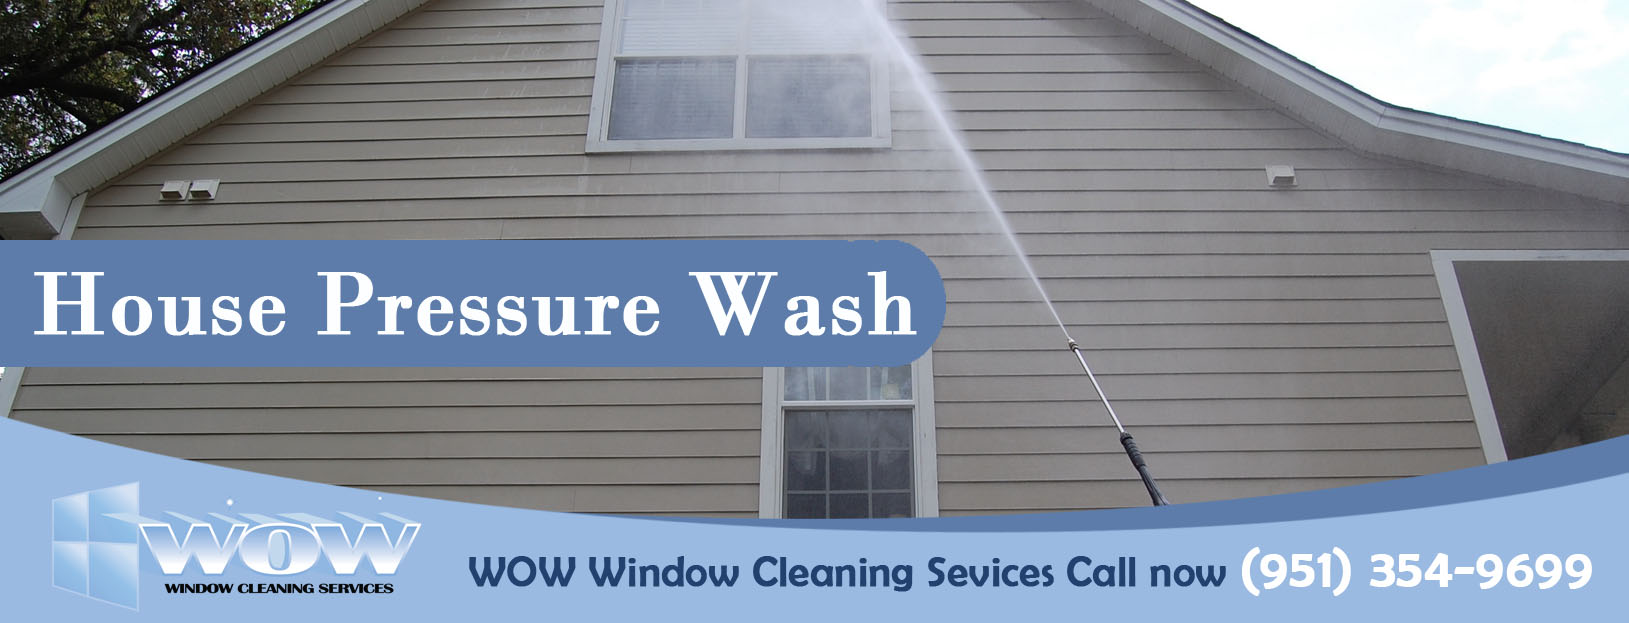 Moreno Valley Riverside Windown Cleaning, house pressure wash, shutters 7